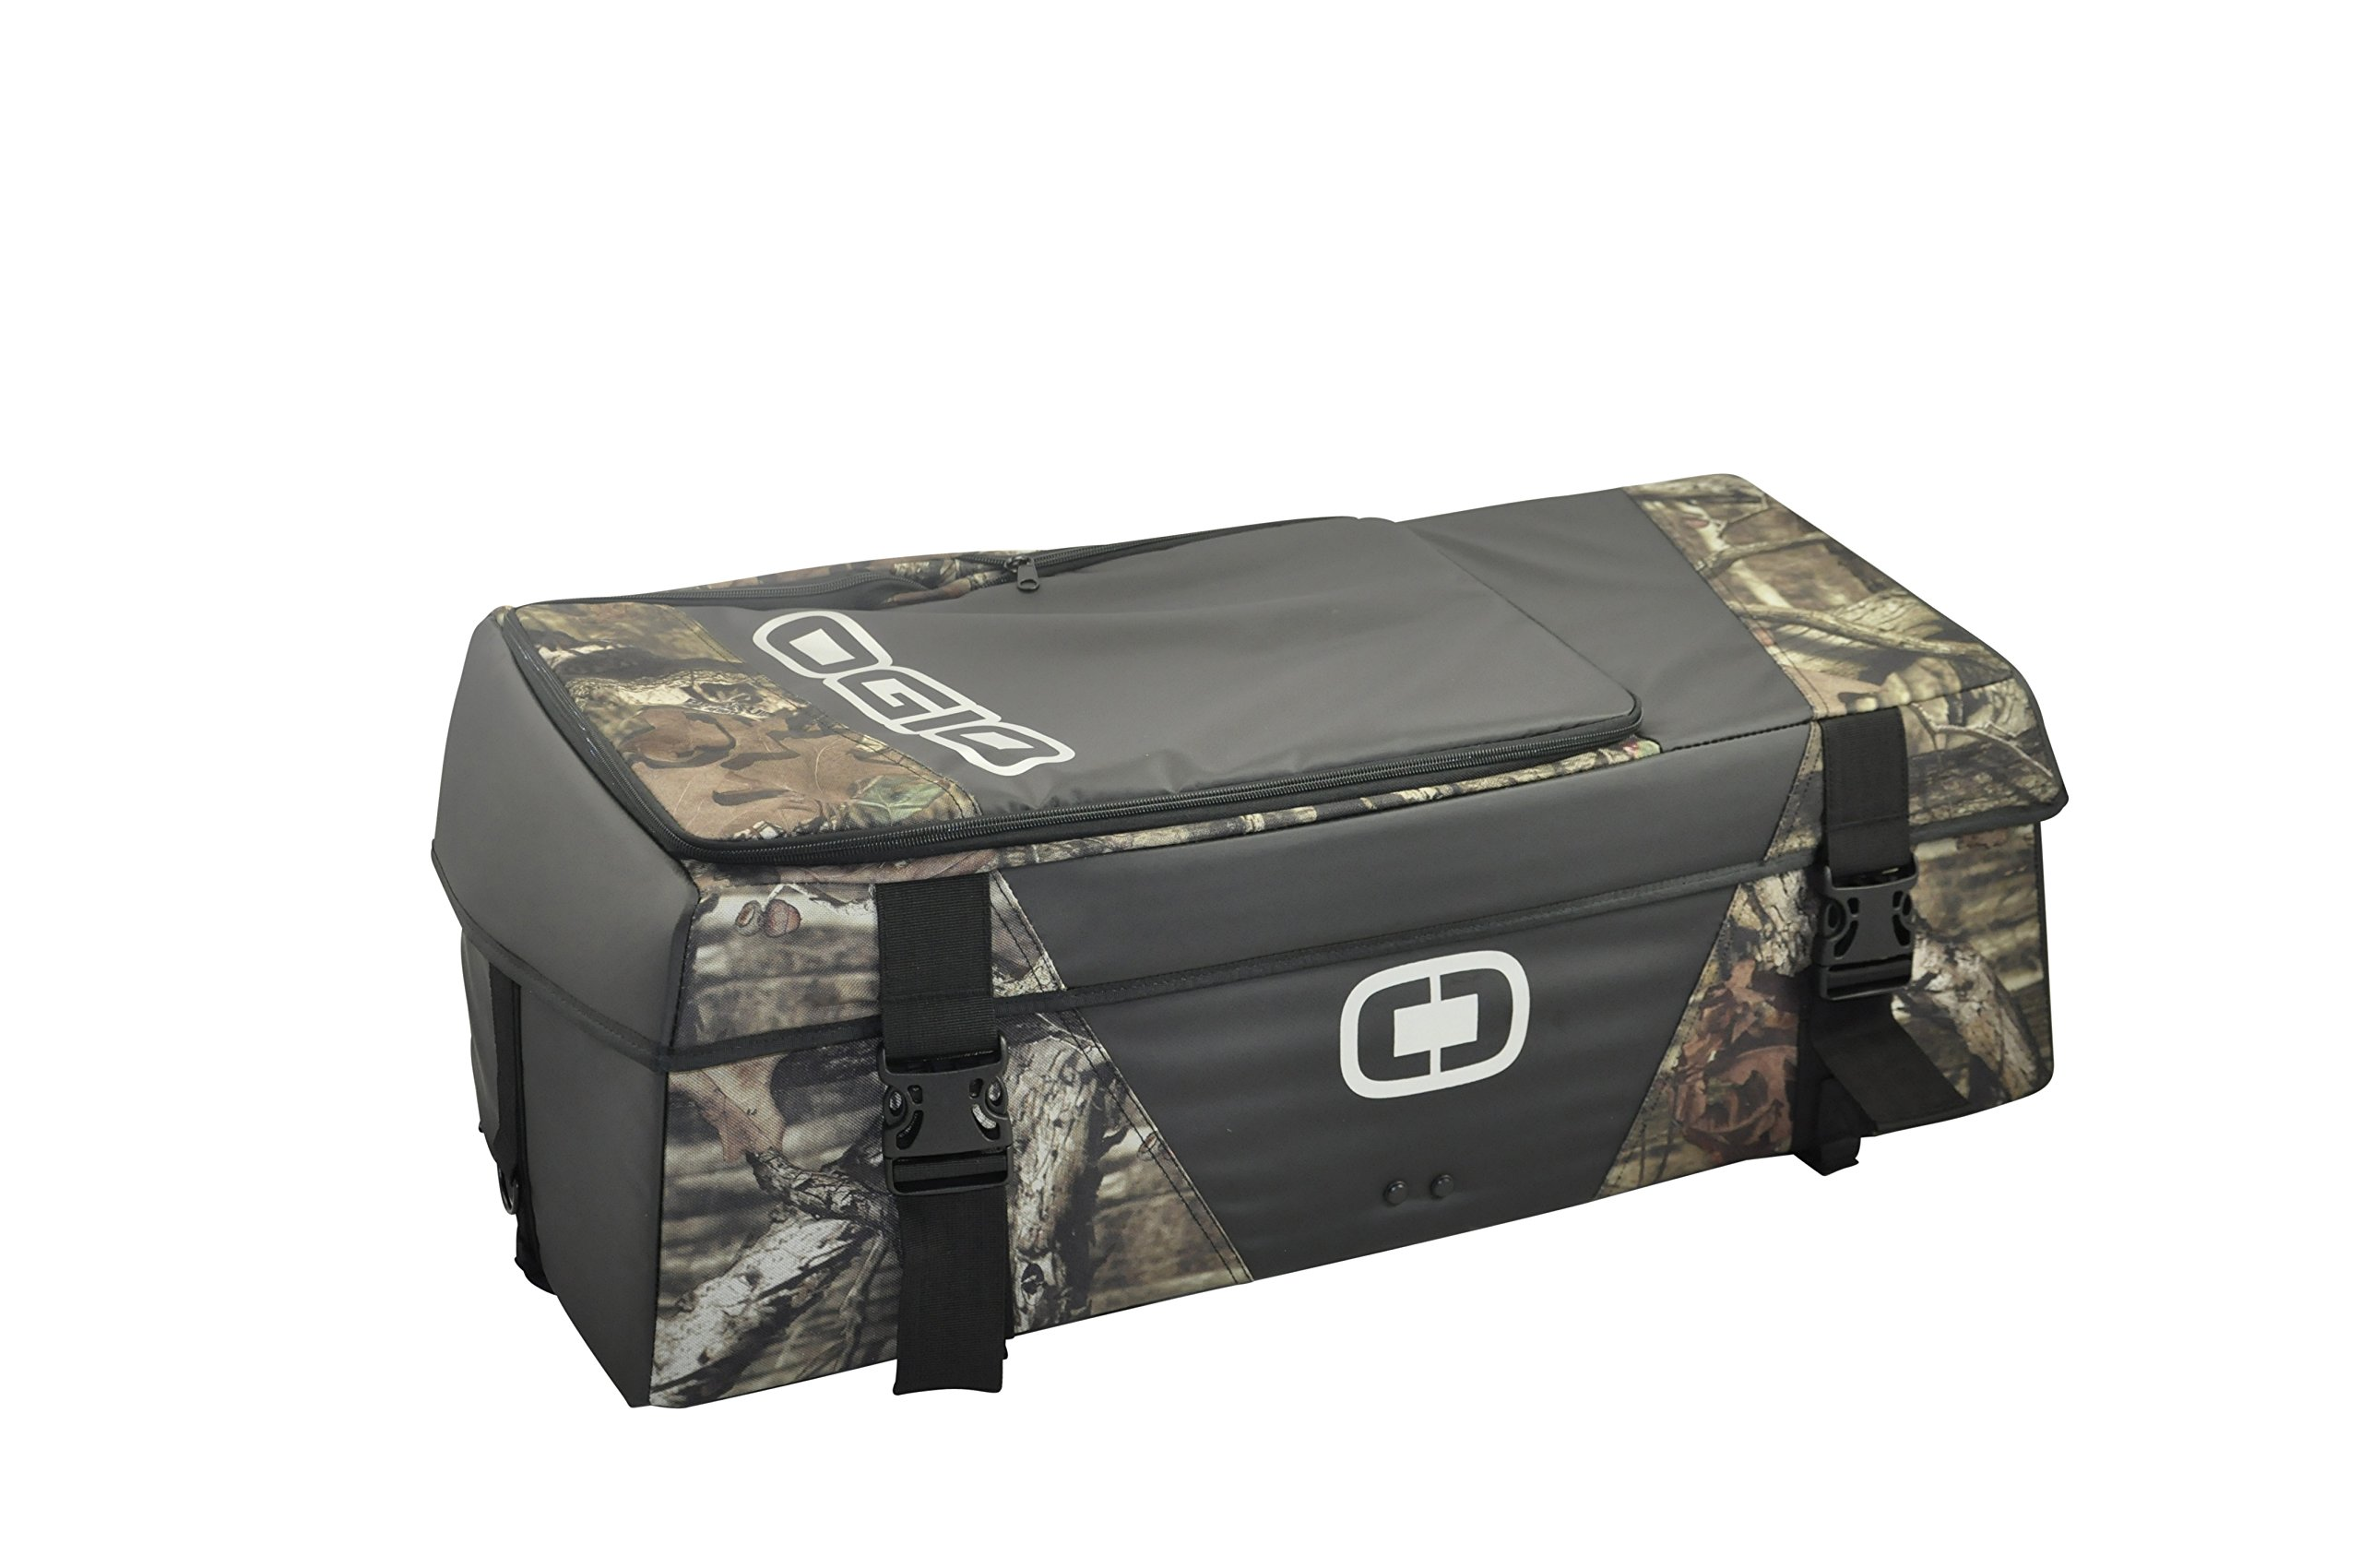 OGIO 119004.427 Mossy Oak Burro Rear ATV Bag - Camo